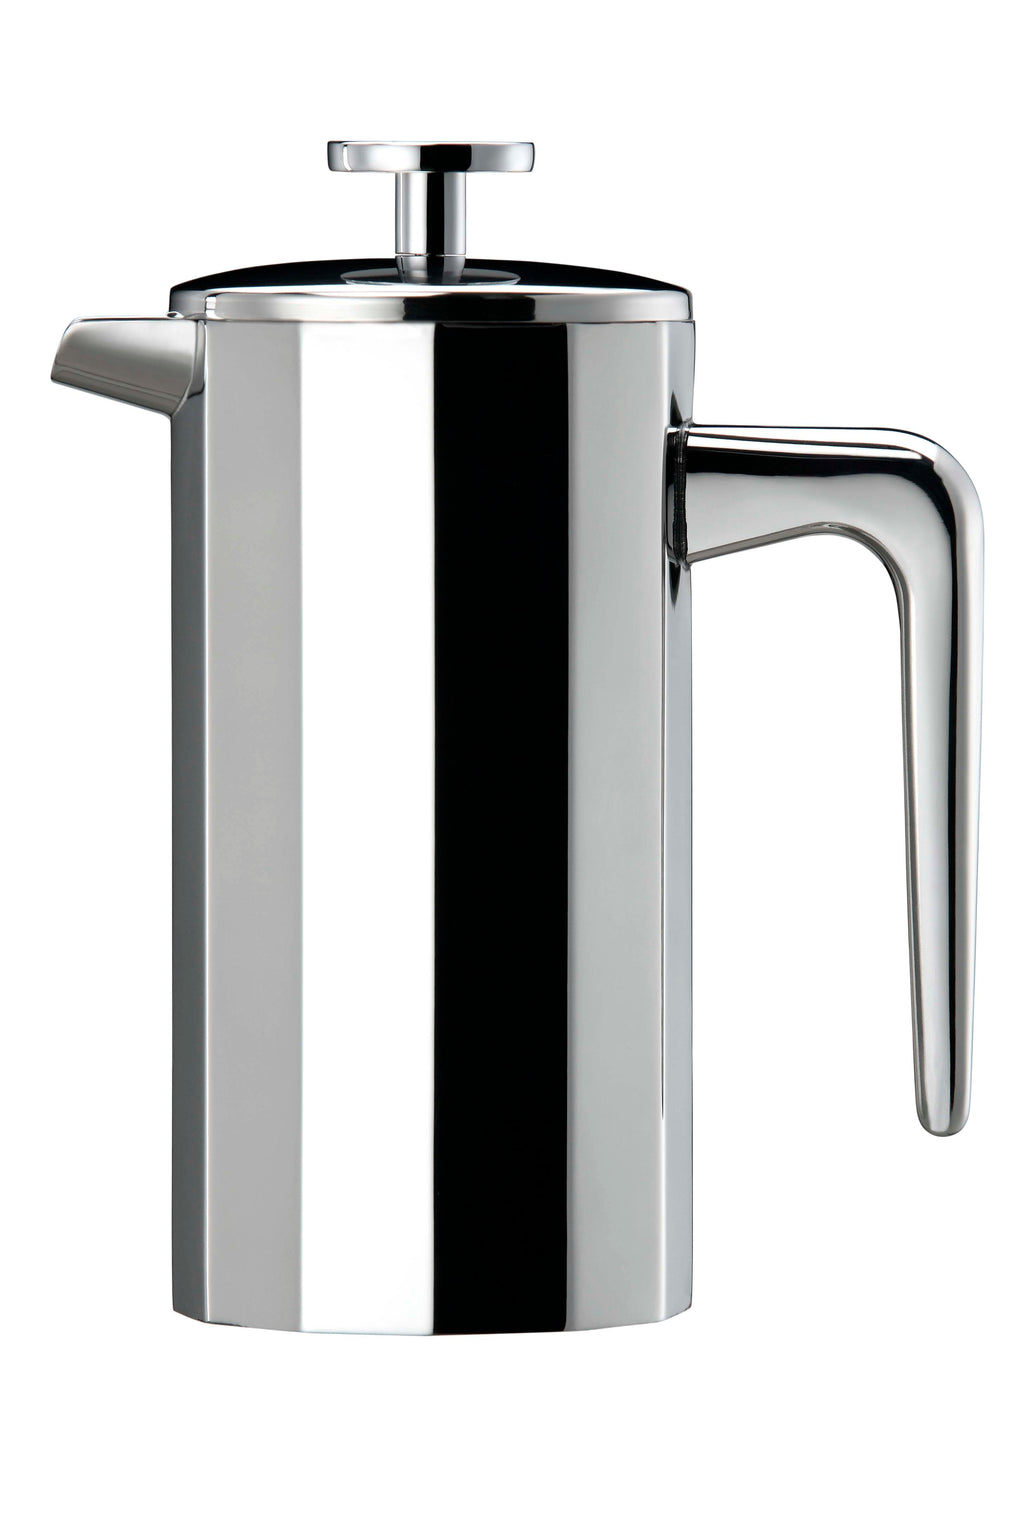 Elia 12 Sided Double Wall Cafetiere,Tabletop Beverage,Elia